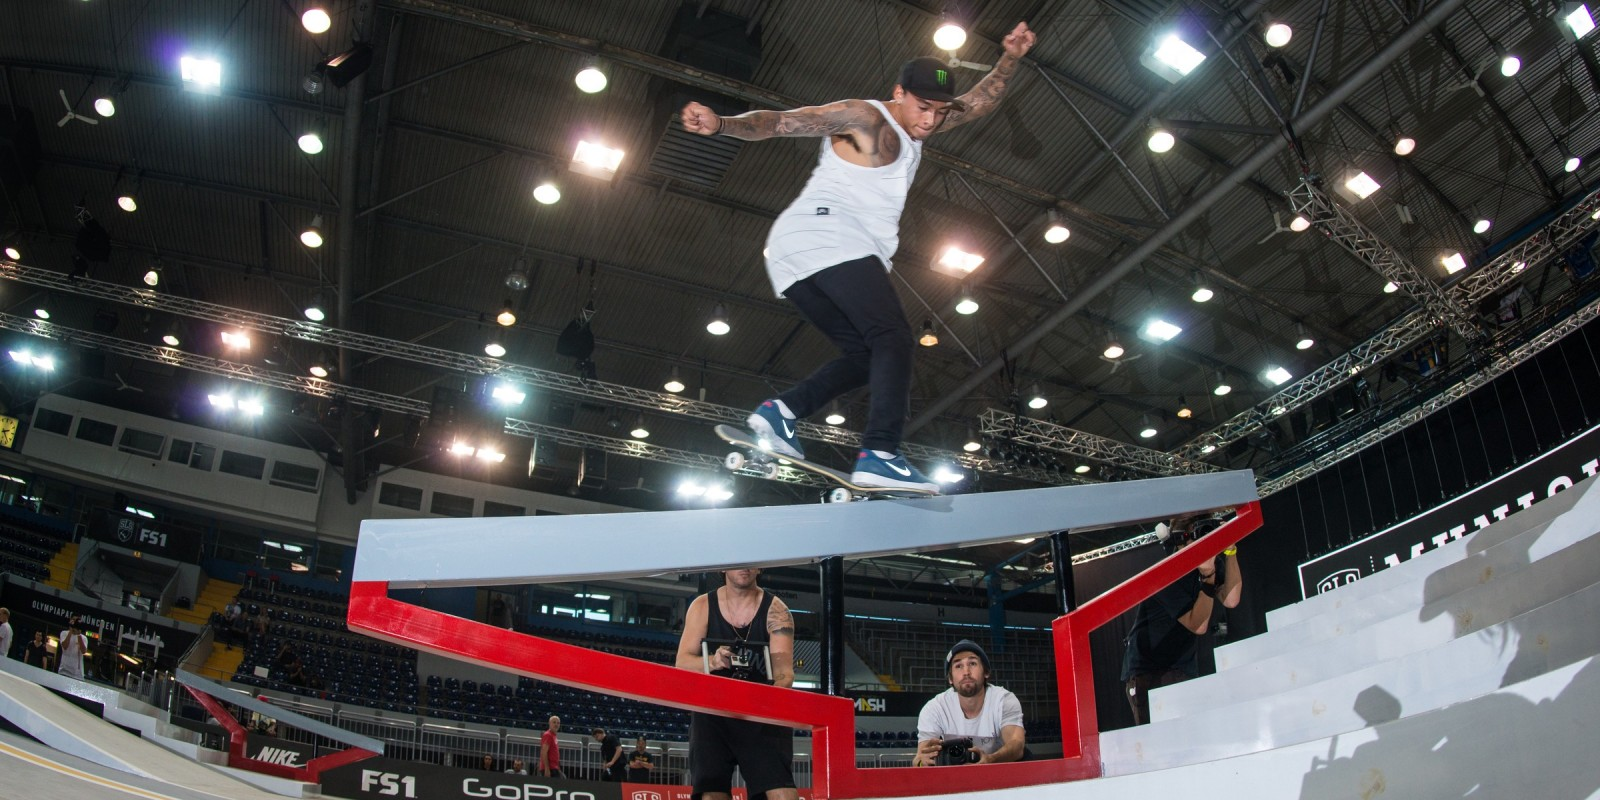 Nyjah Huston during practice for the SLS 2016 season in Munich, Germany